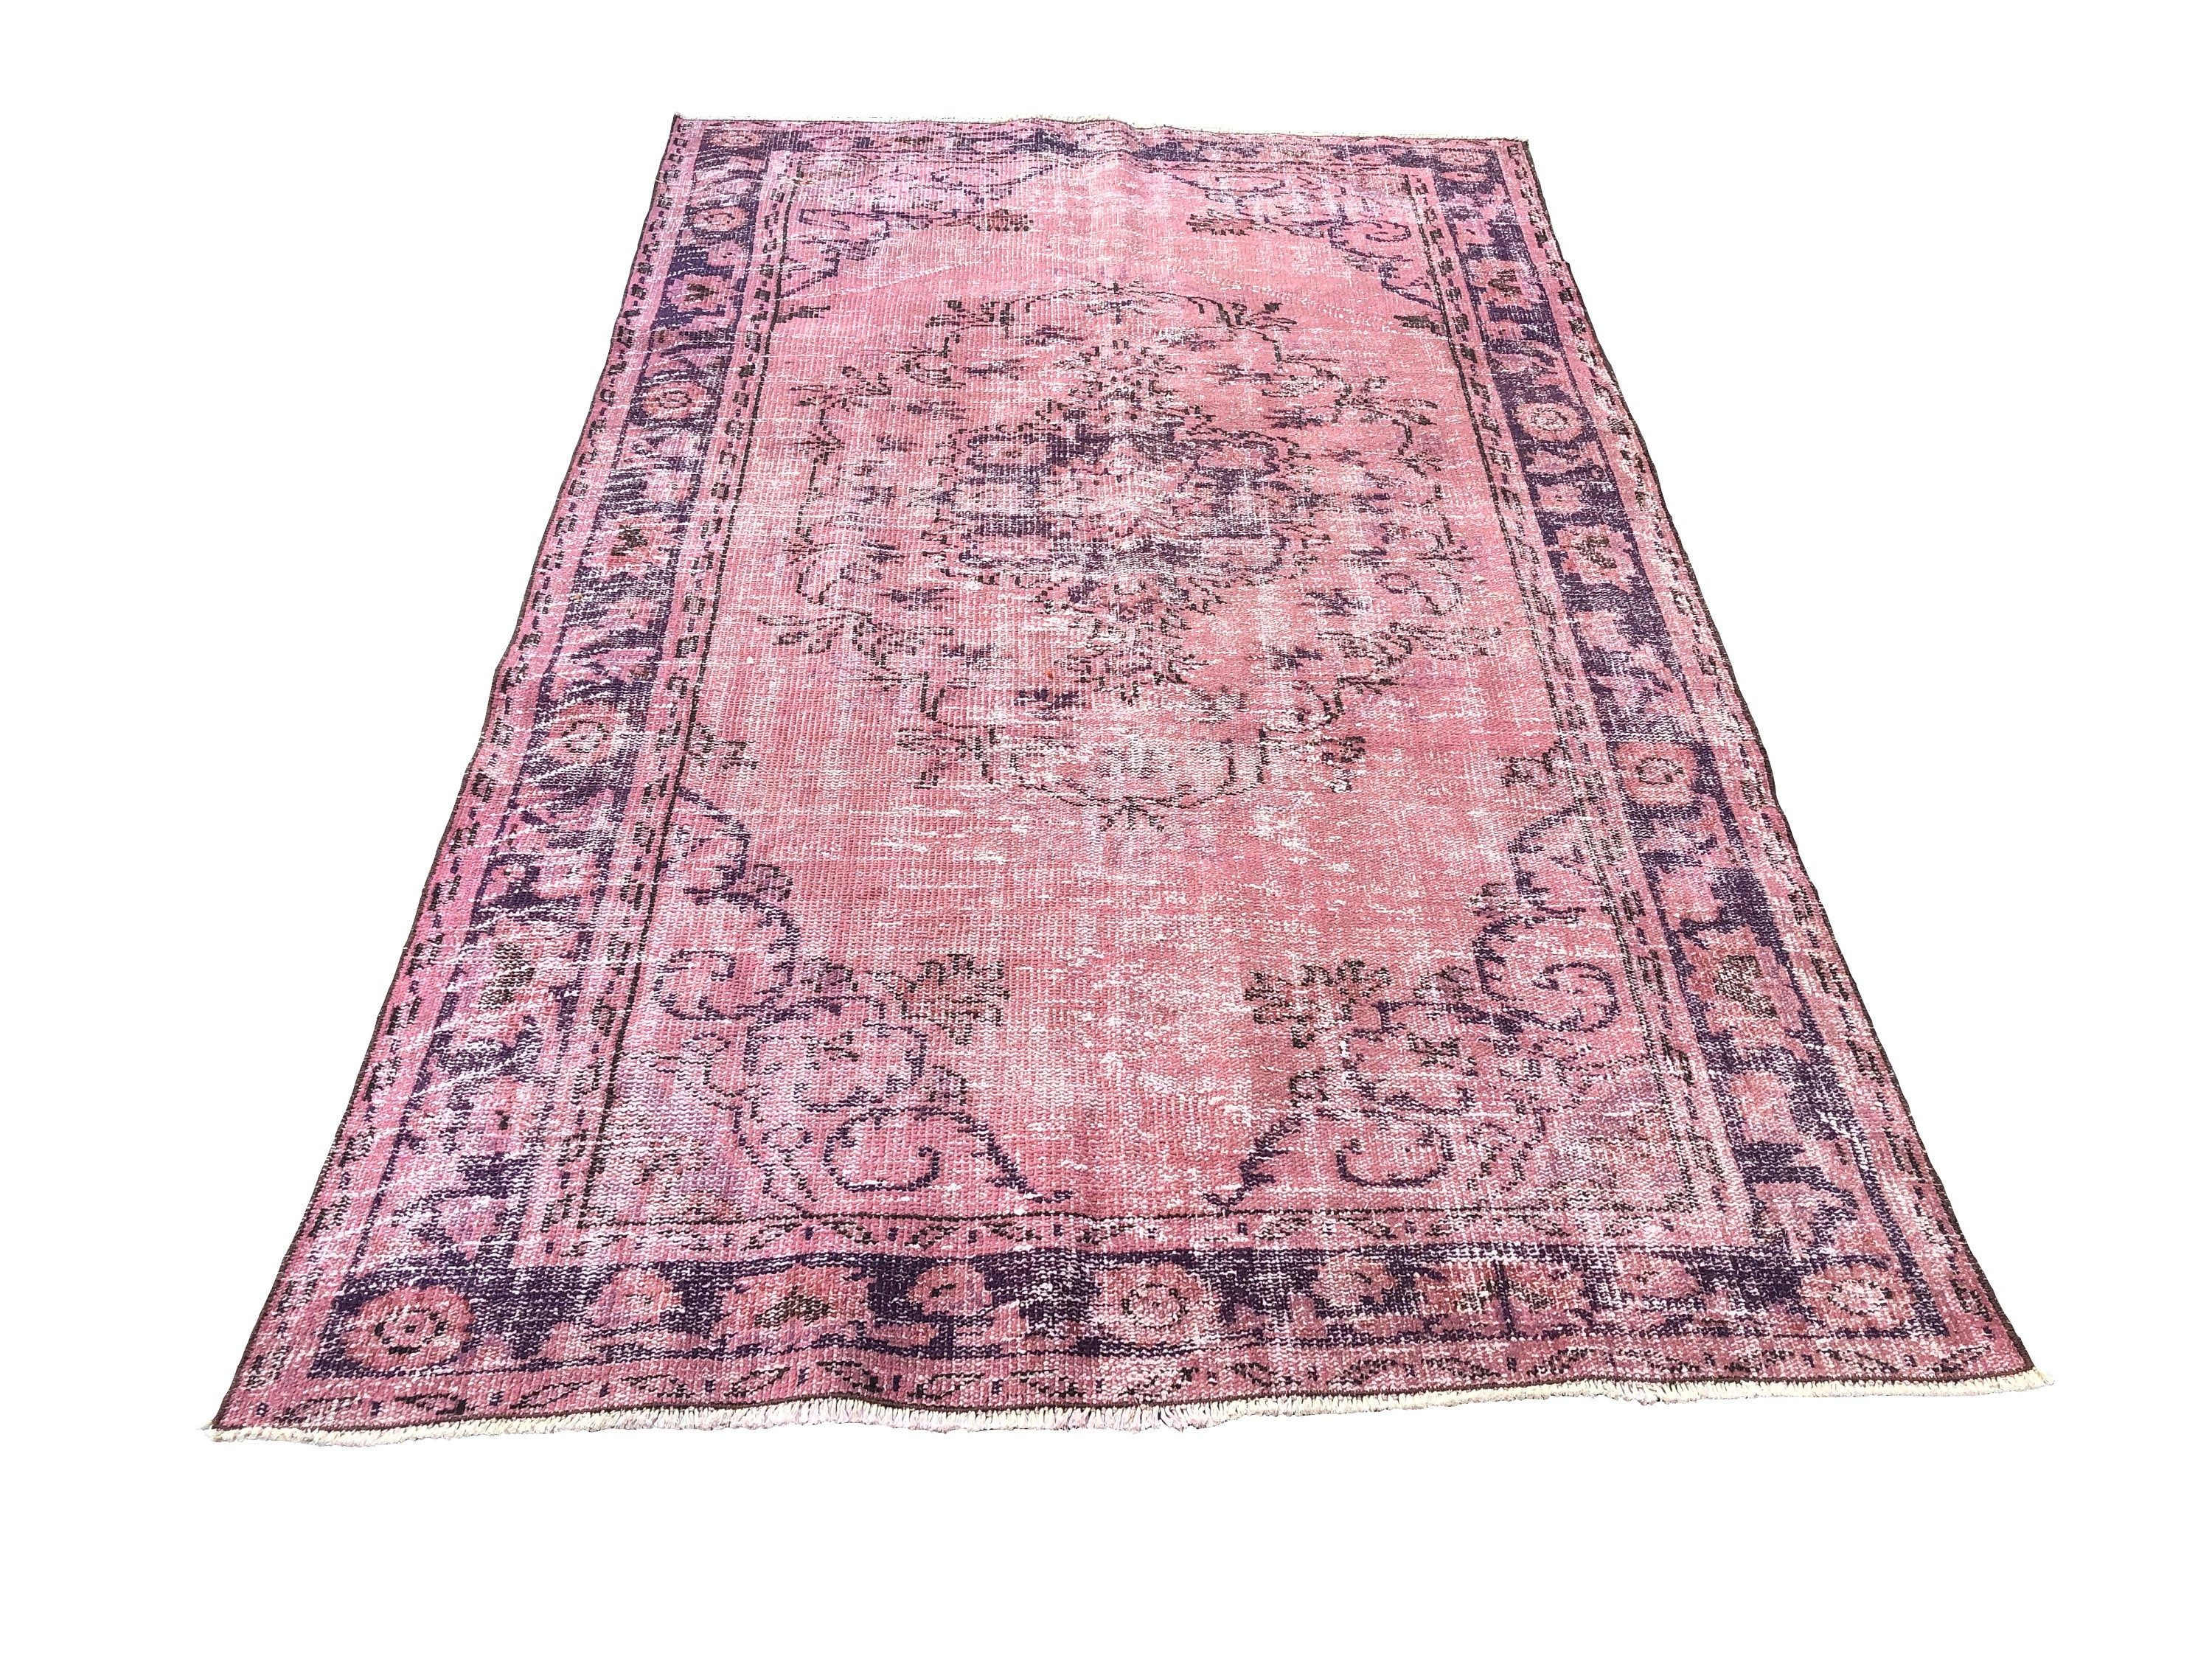 Pink Overdyed Rug 8 3 X 4 9 Ft Turkish Modern Decor Rug Vintage